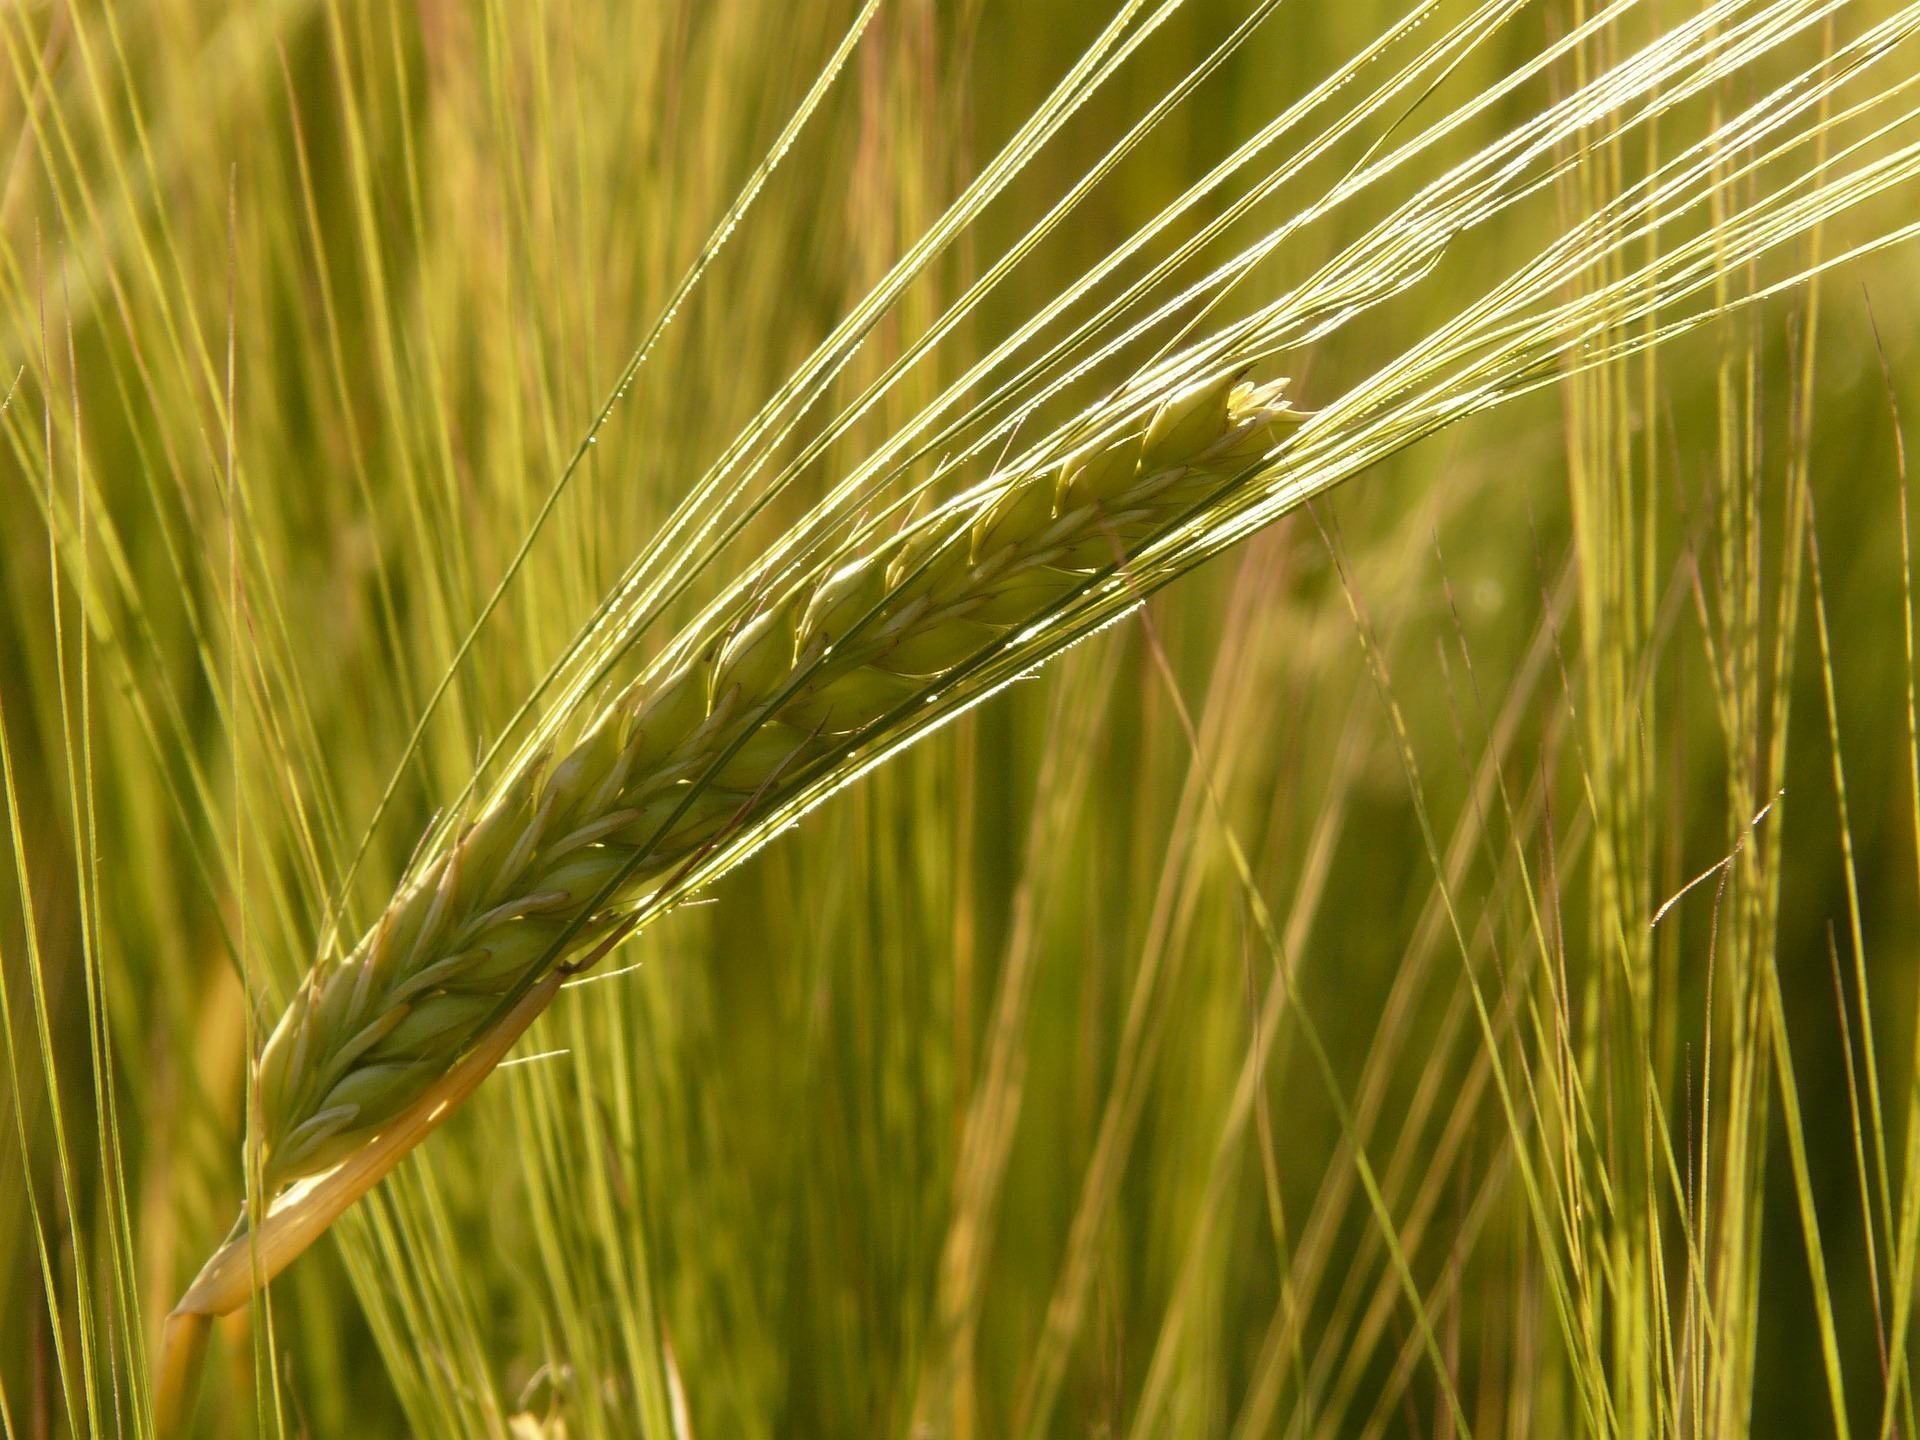 This past year, researchers from the U.S., China, and the U.K. set out to predict the future of barley production, specifically as it relates to beer.